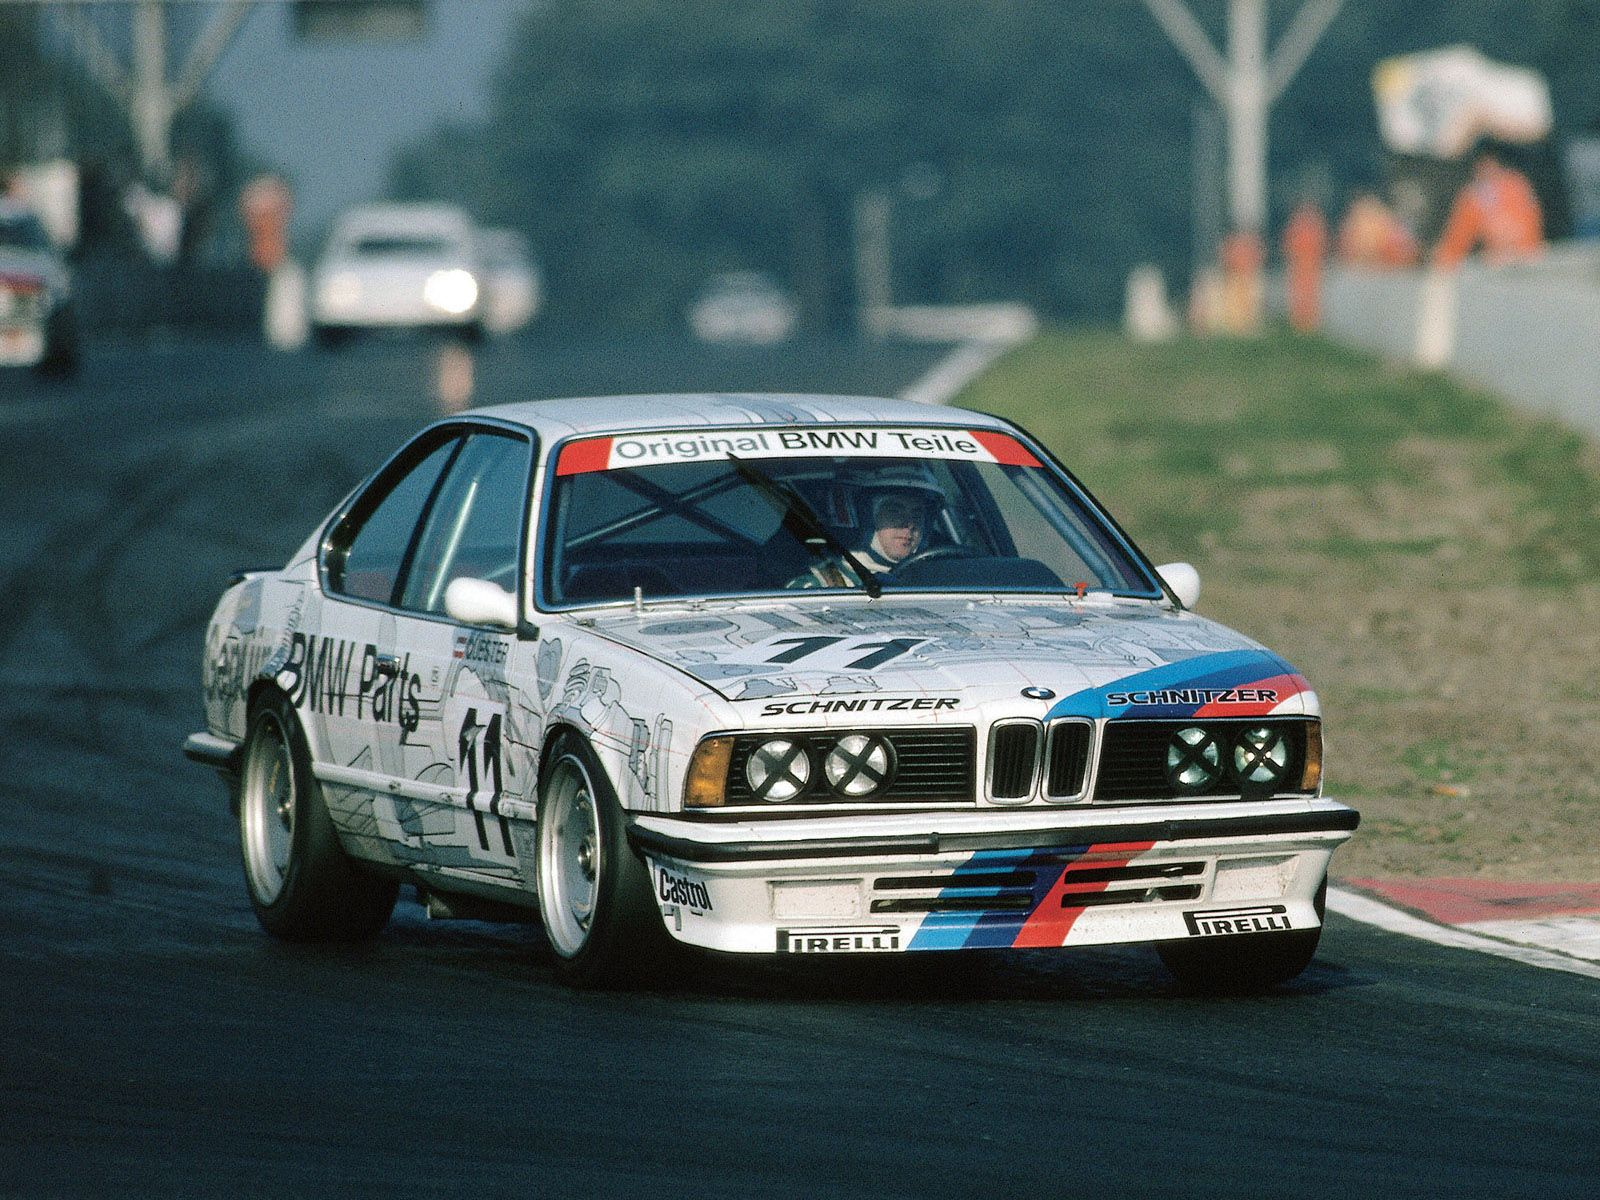 1986 BMW 635CSi touring car